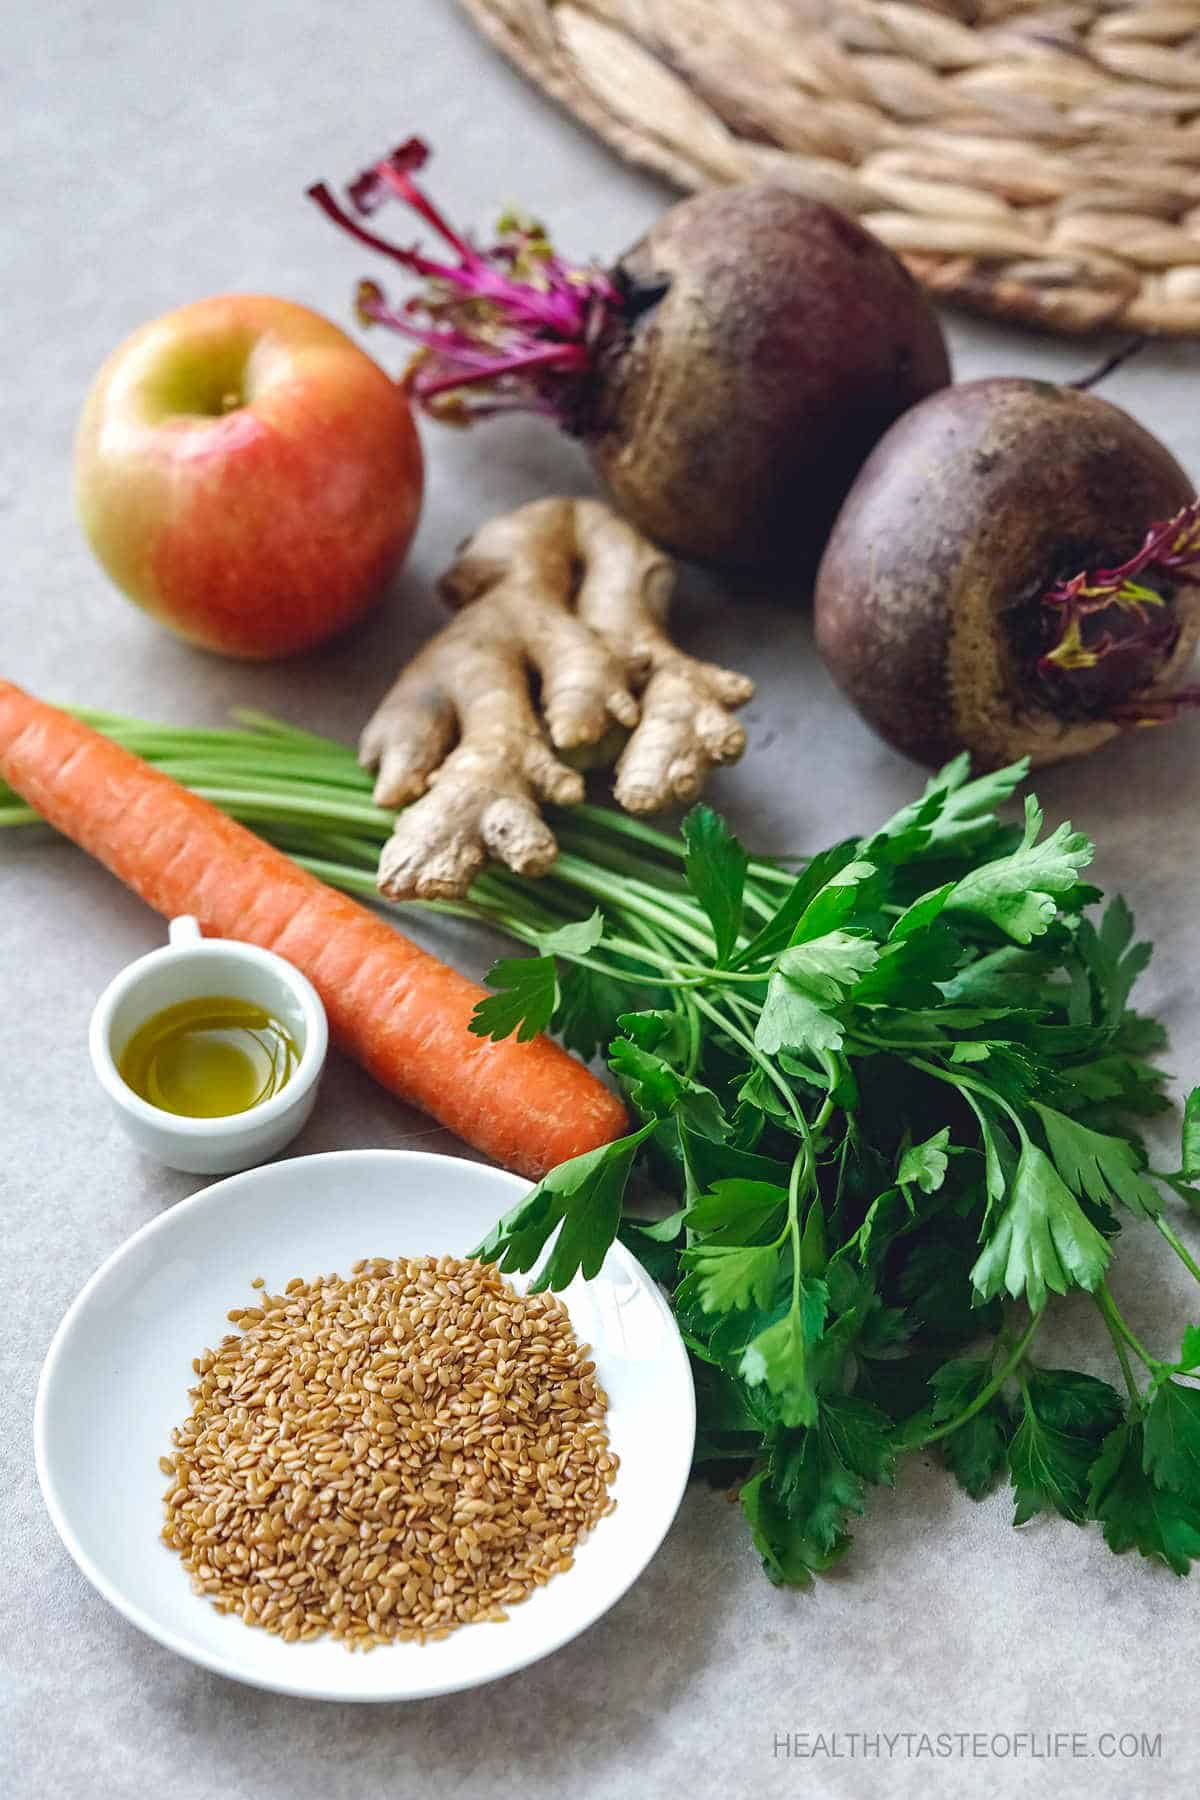 The best ingredients for a liver detox smoothie, cleanse your liver and colon with real whole foods #liverdetox #detoxsmoothie #vegetablesmoothie